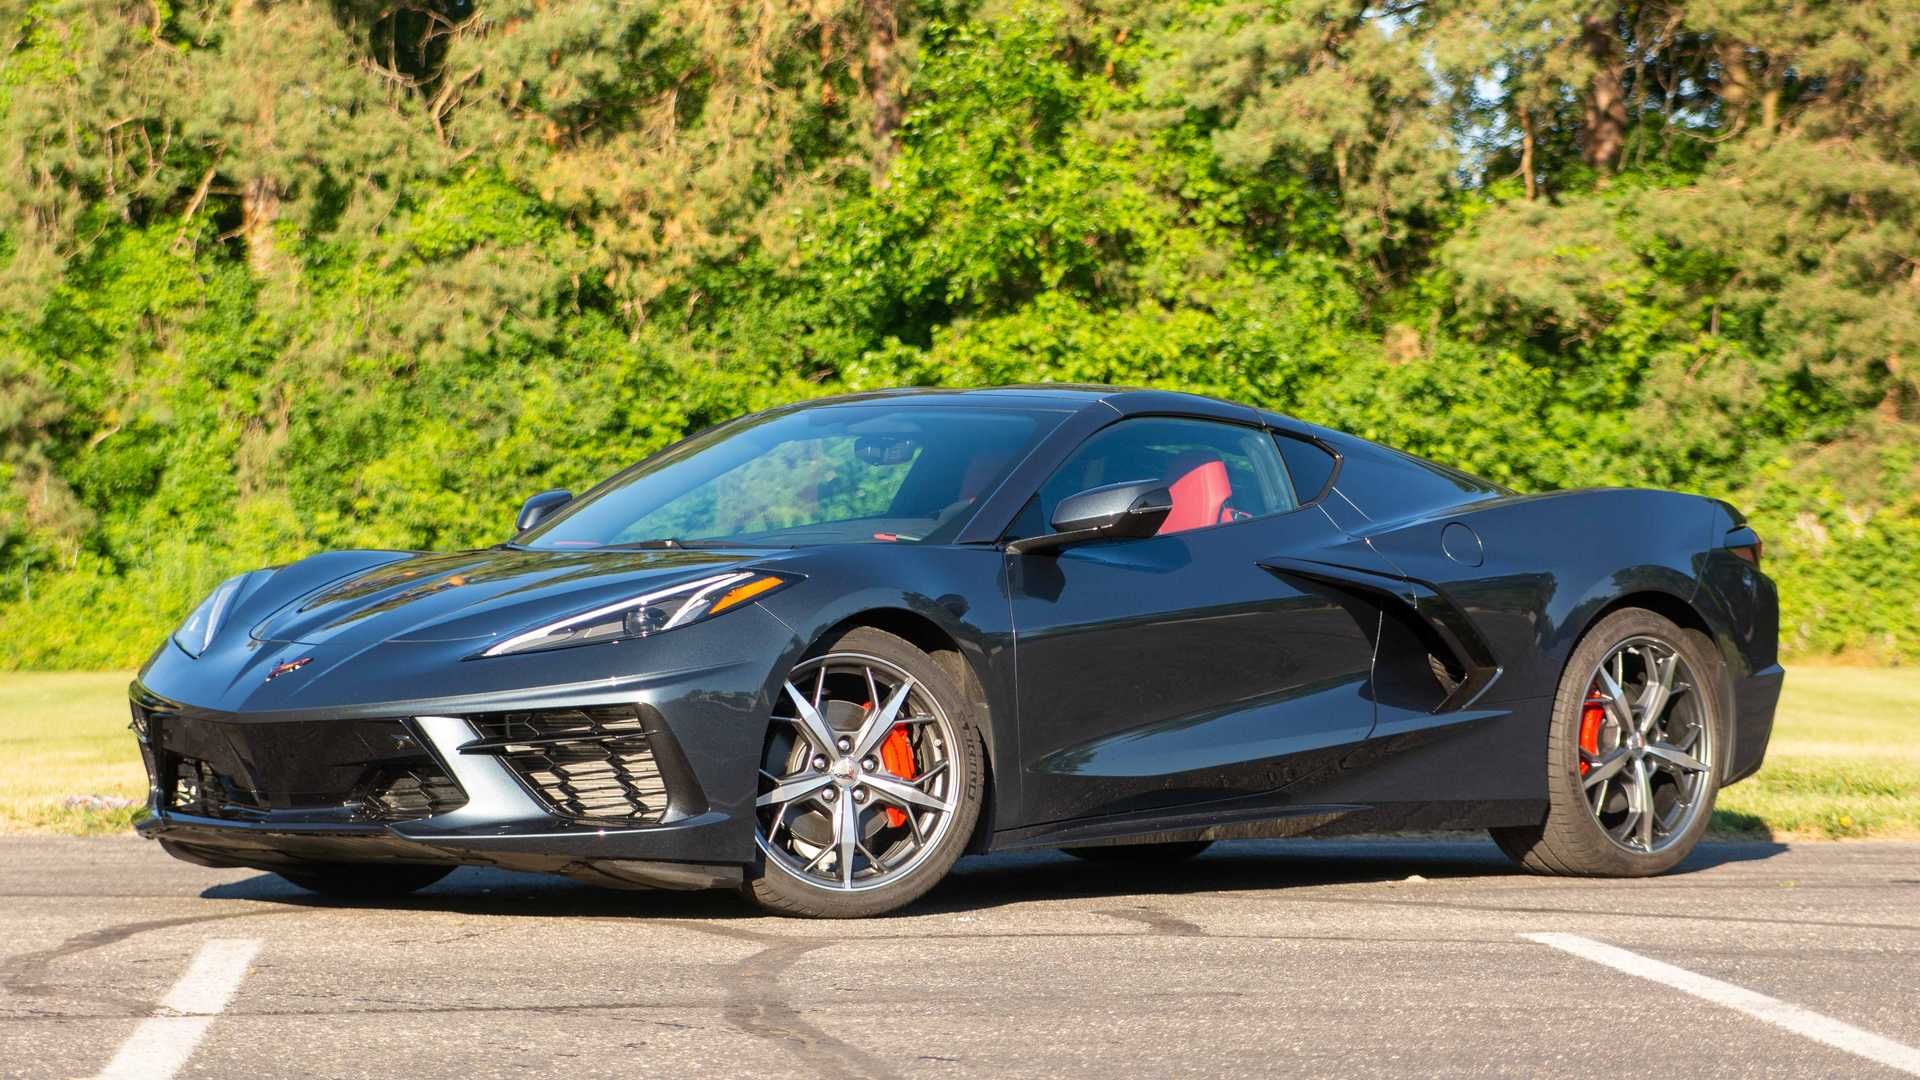 2020 Chevrolet Corvette Stingray Review: A Lot Of Perfect, A Lot Of Poor